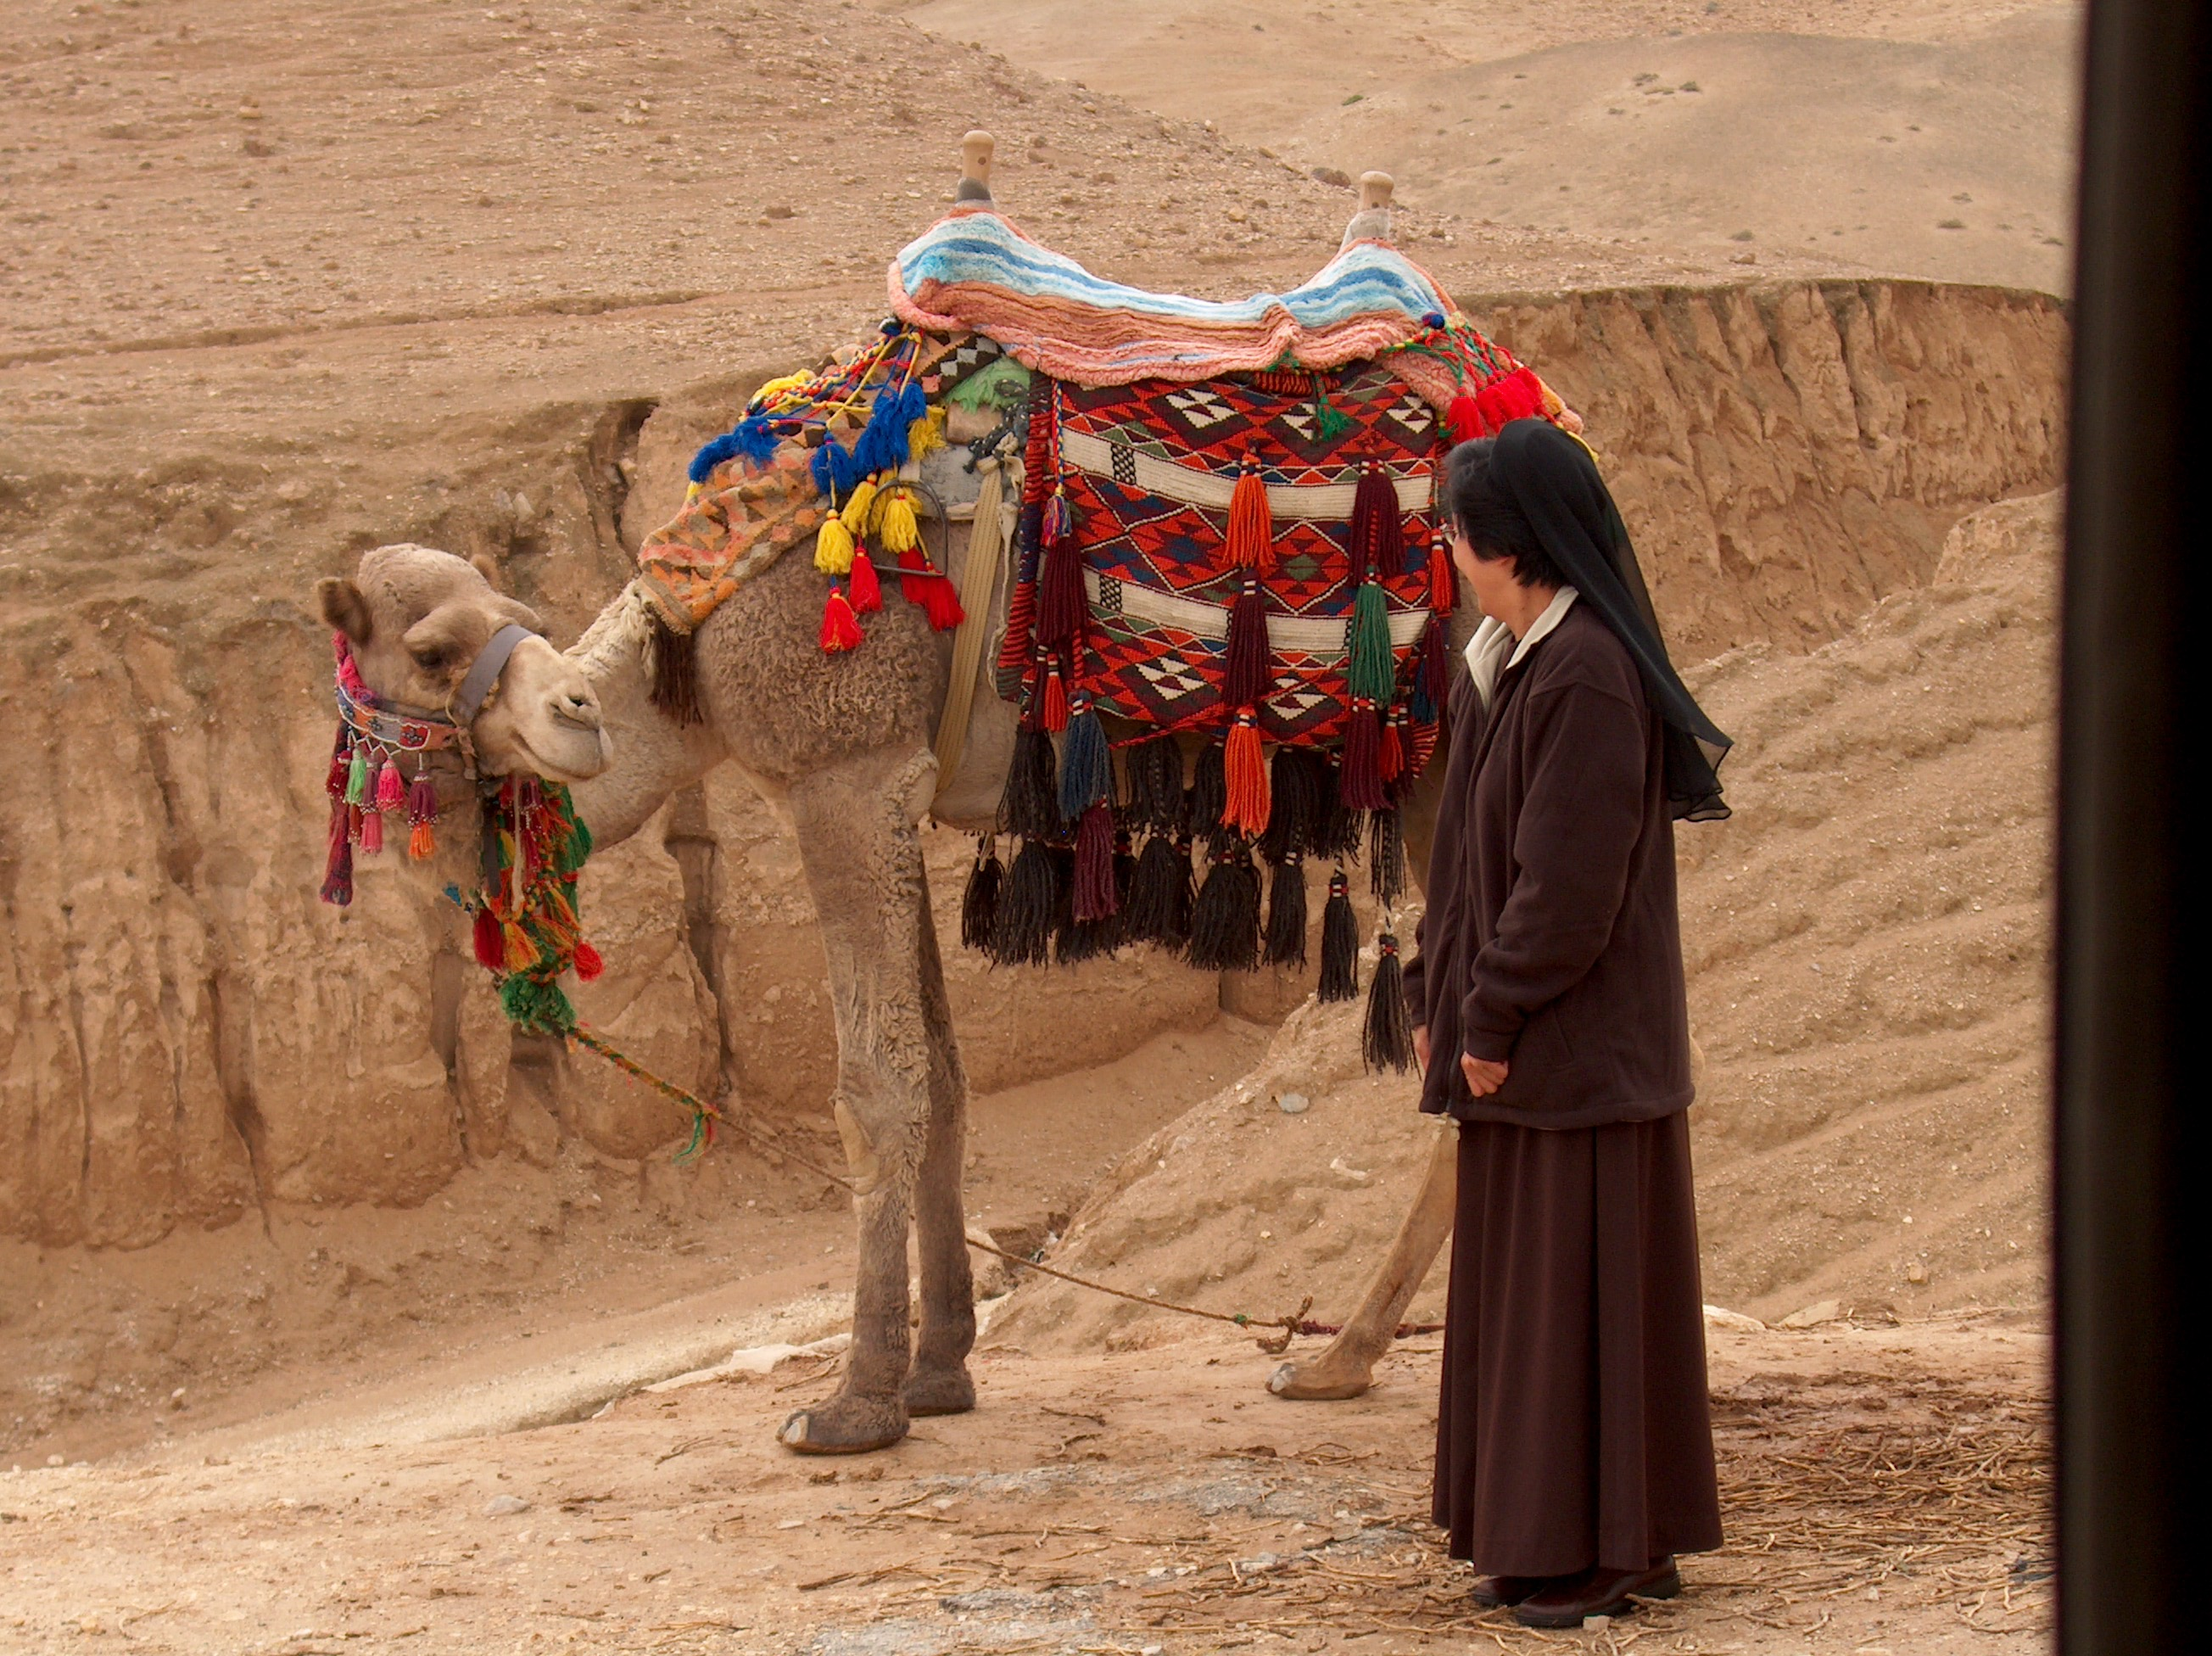 Sister Monica Novalta, FSE meets a camel near the Dead Sea.